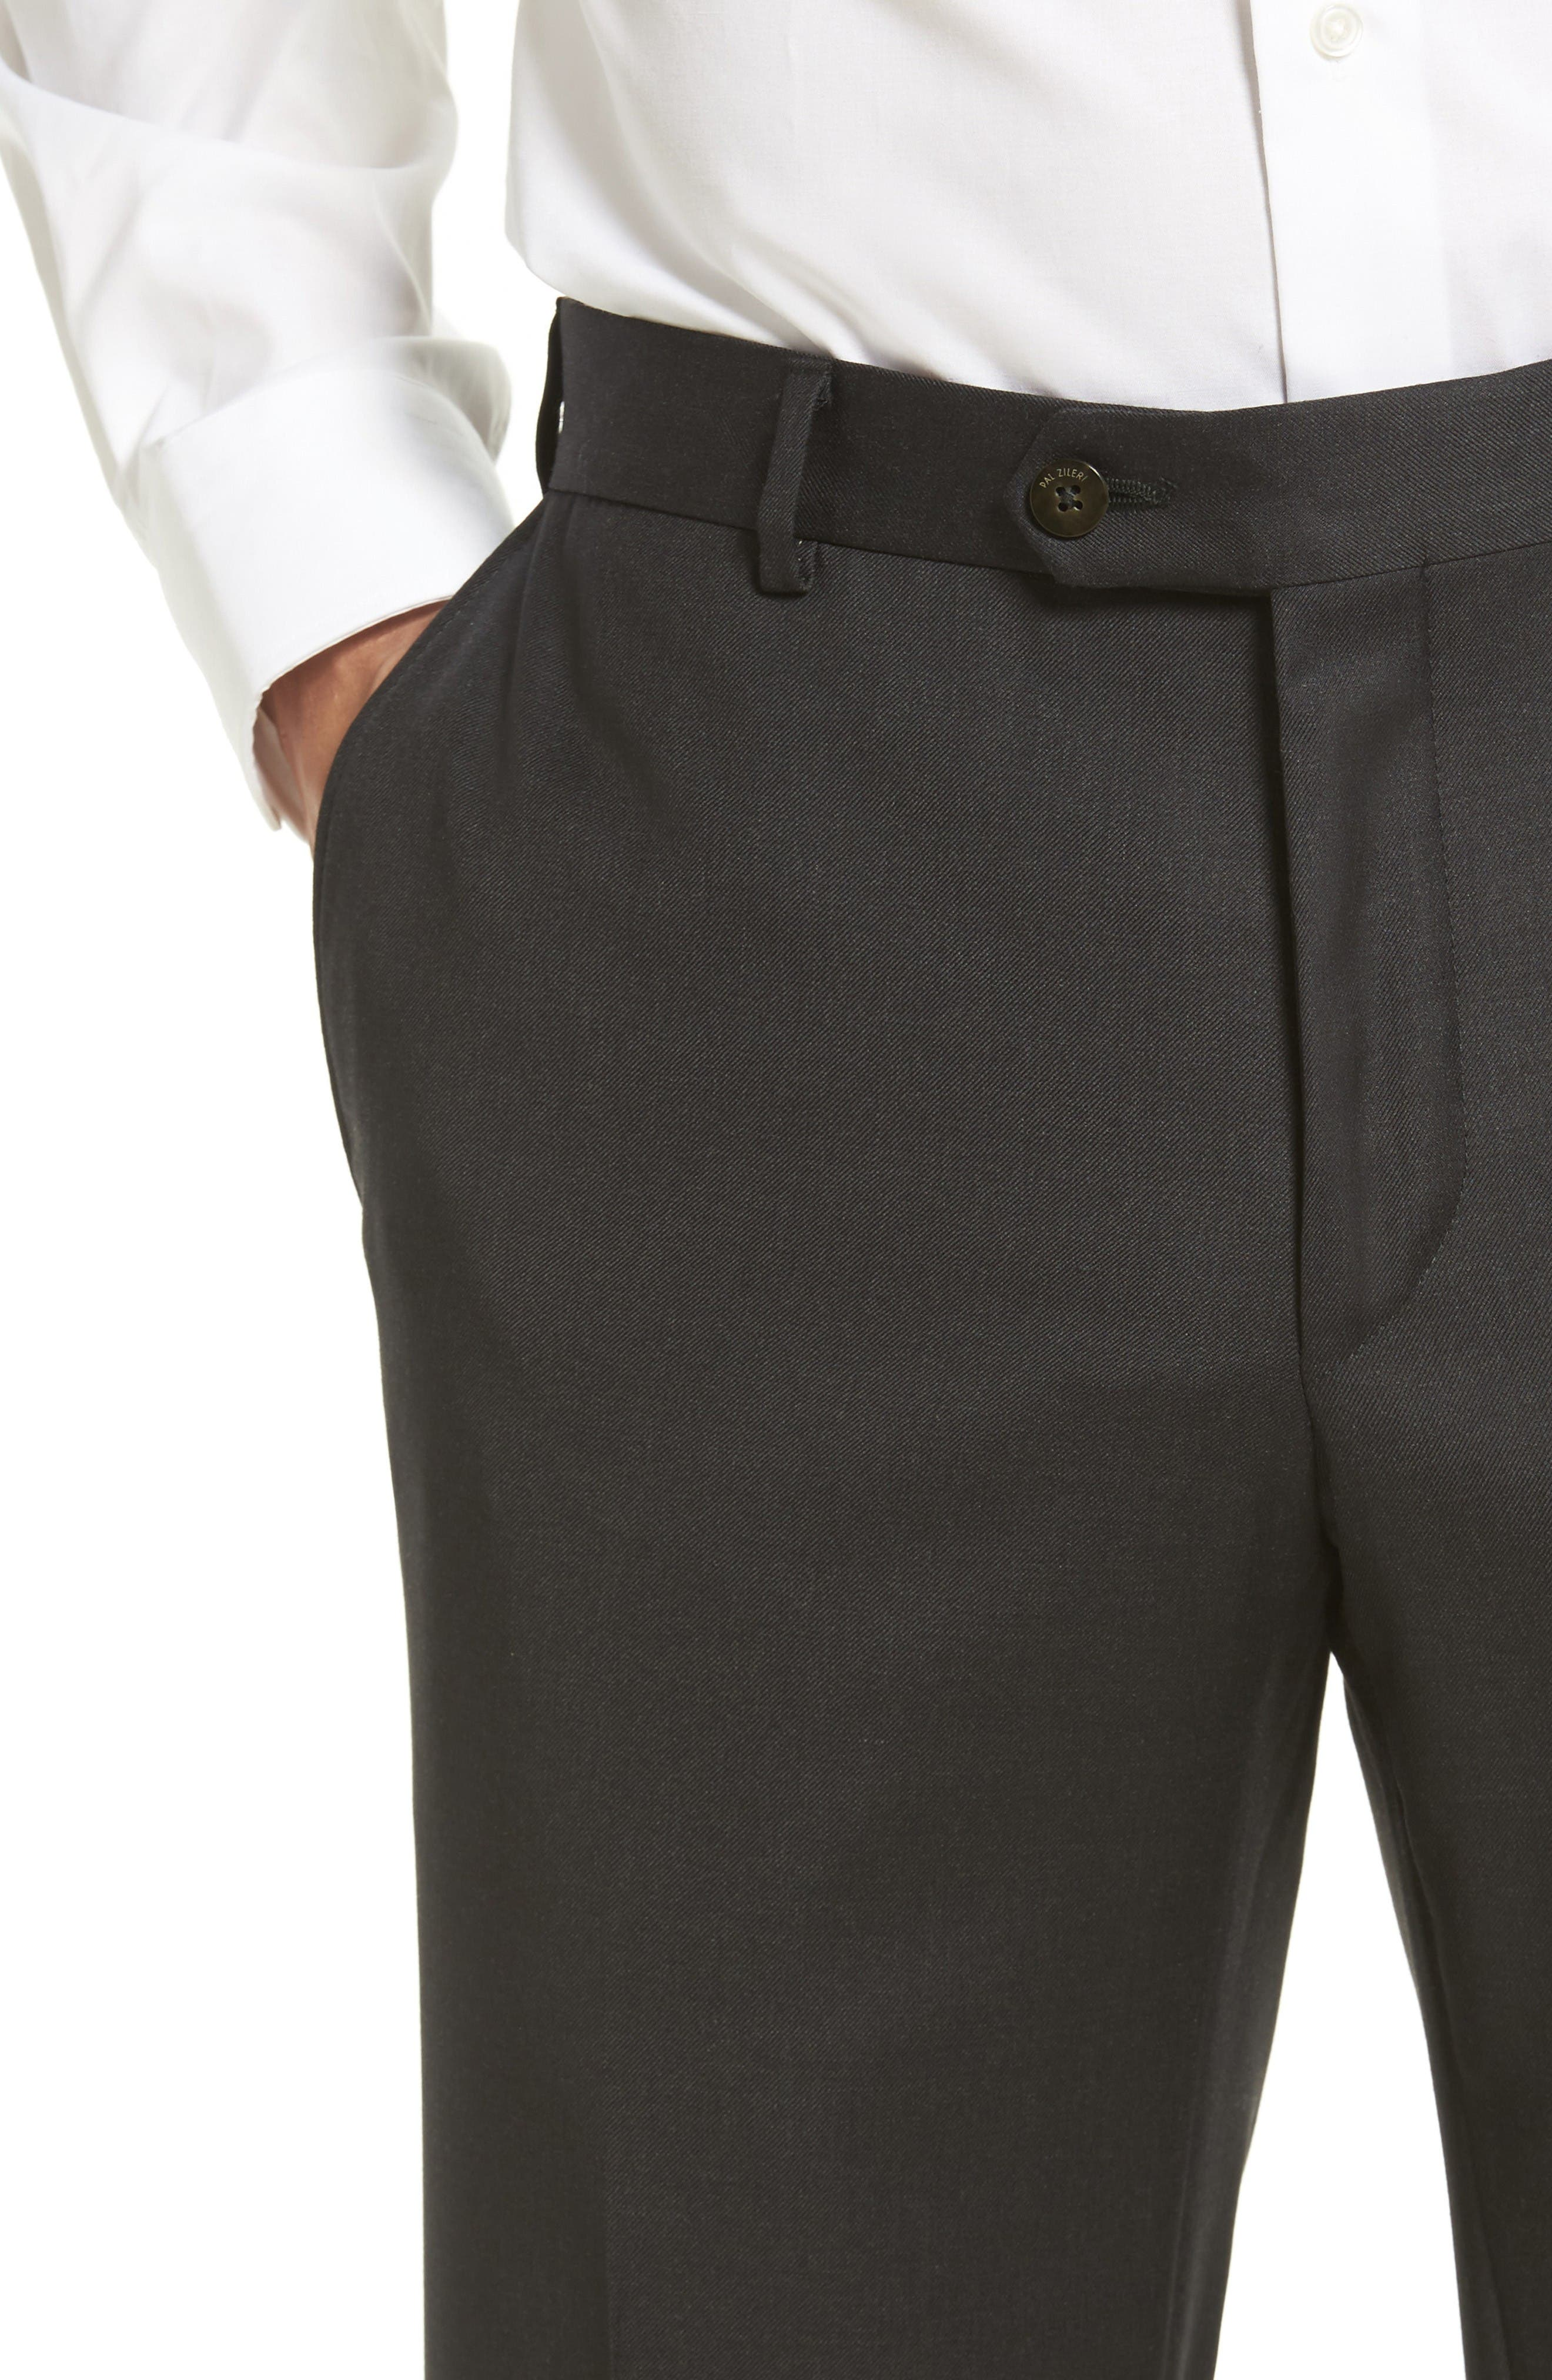 Flat Front Solid Wool Trousers,                             Alternate thumbnail 4, color,                             Charcoal